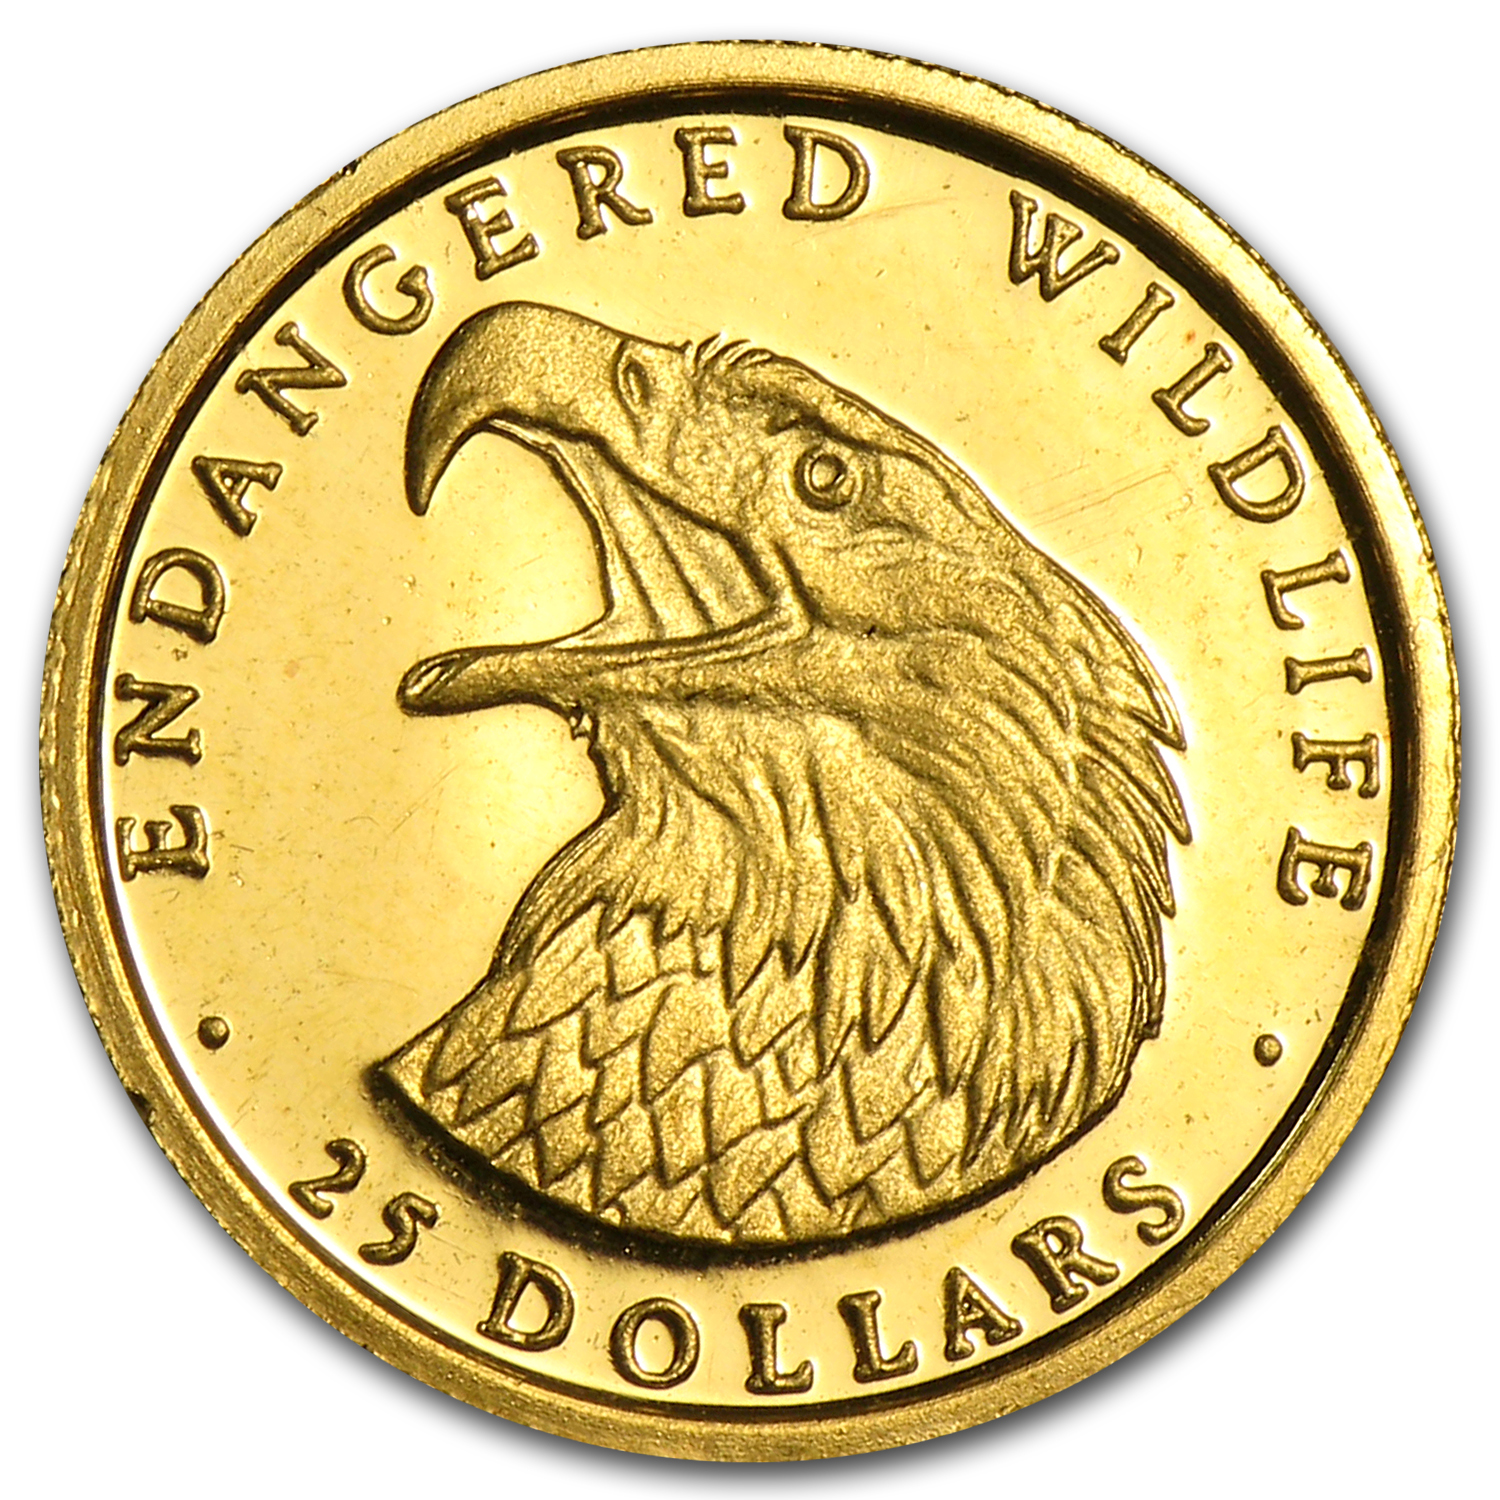 1990 Cook Islands Gold $25 Endangered Wildlife Proof